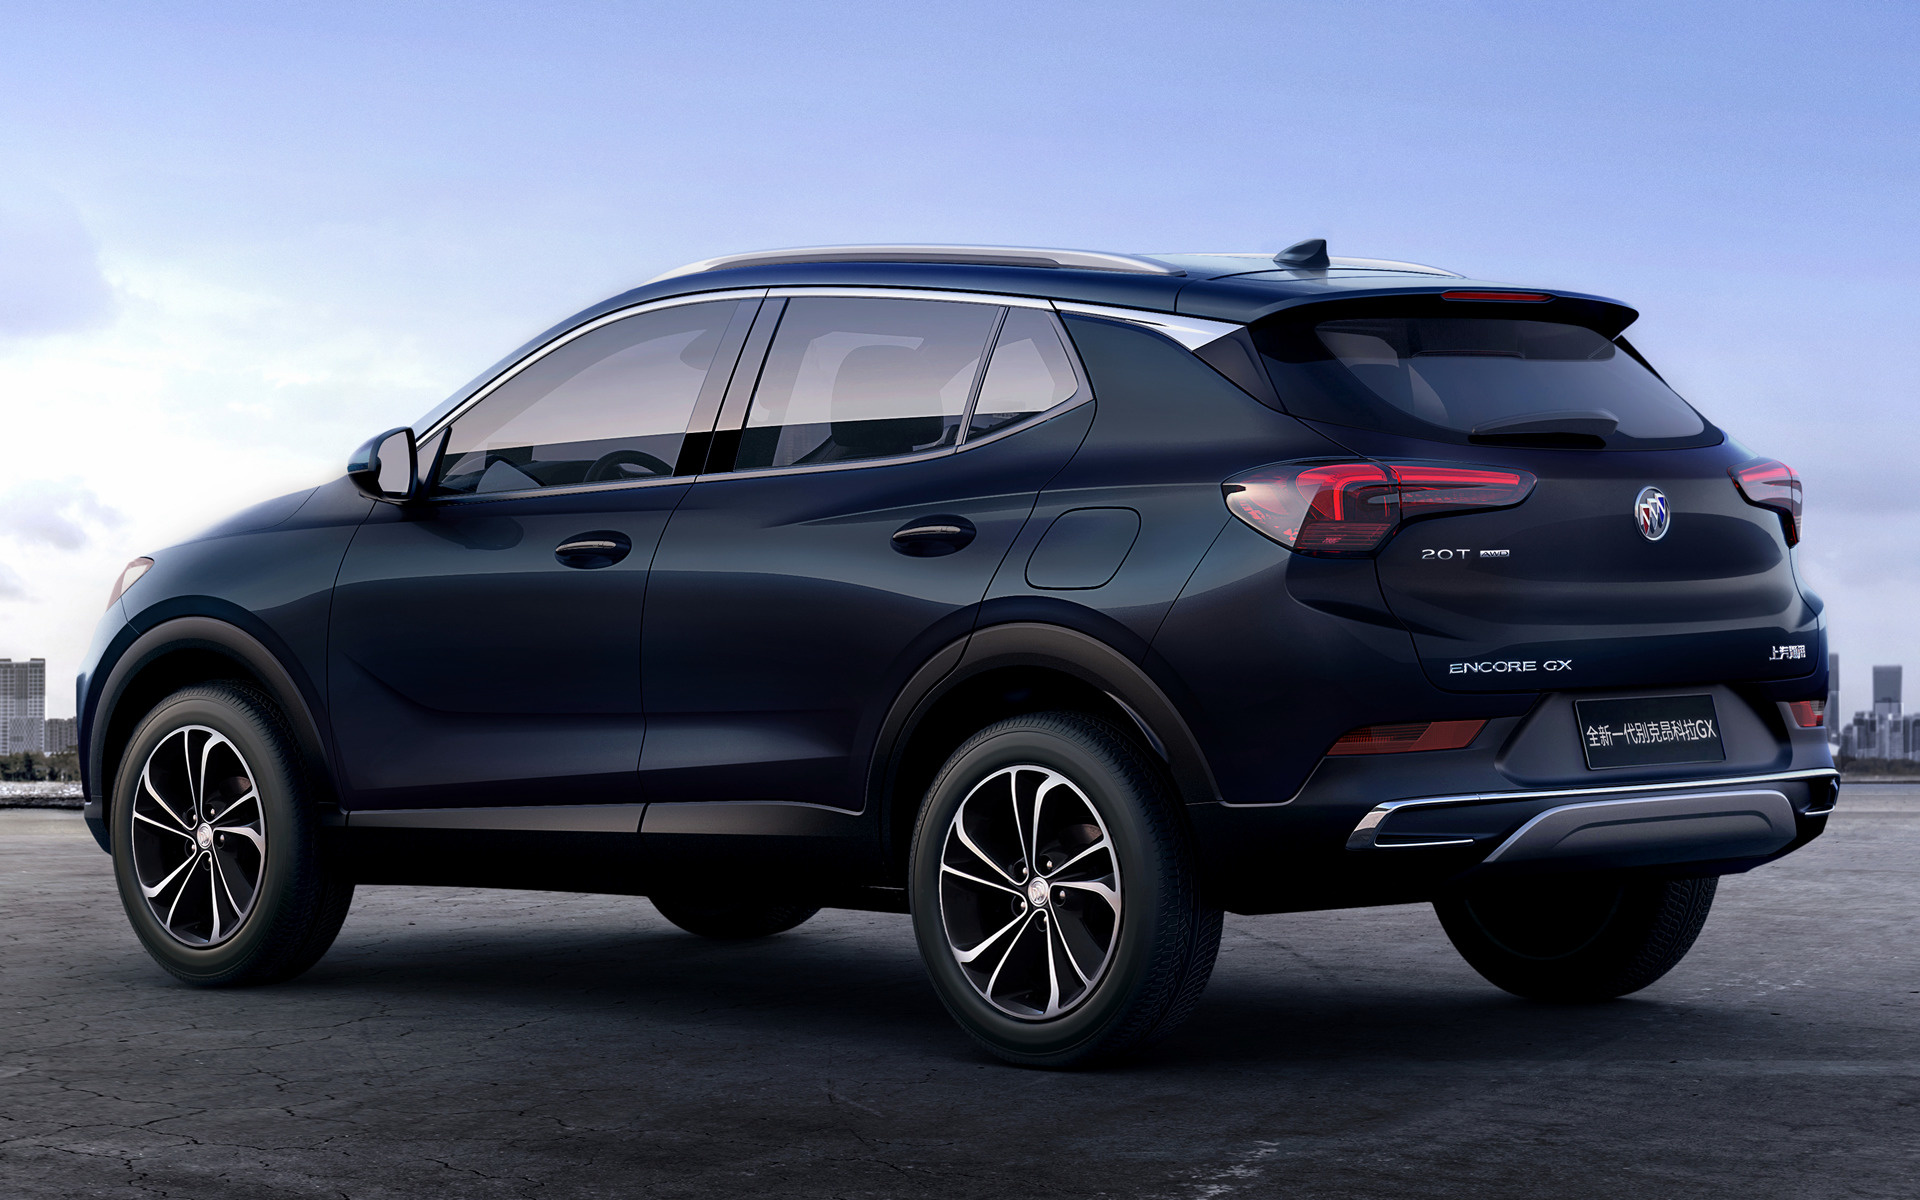 2020 Buick Encore GX (CN) - Wallpapers and HD Images | Car Pixel